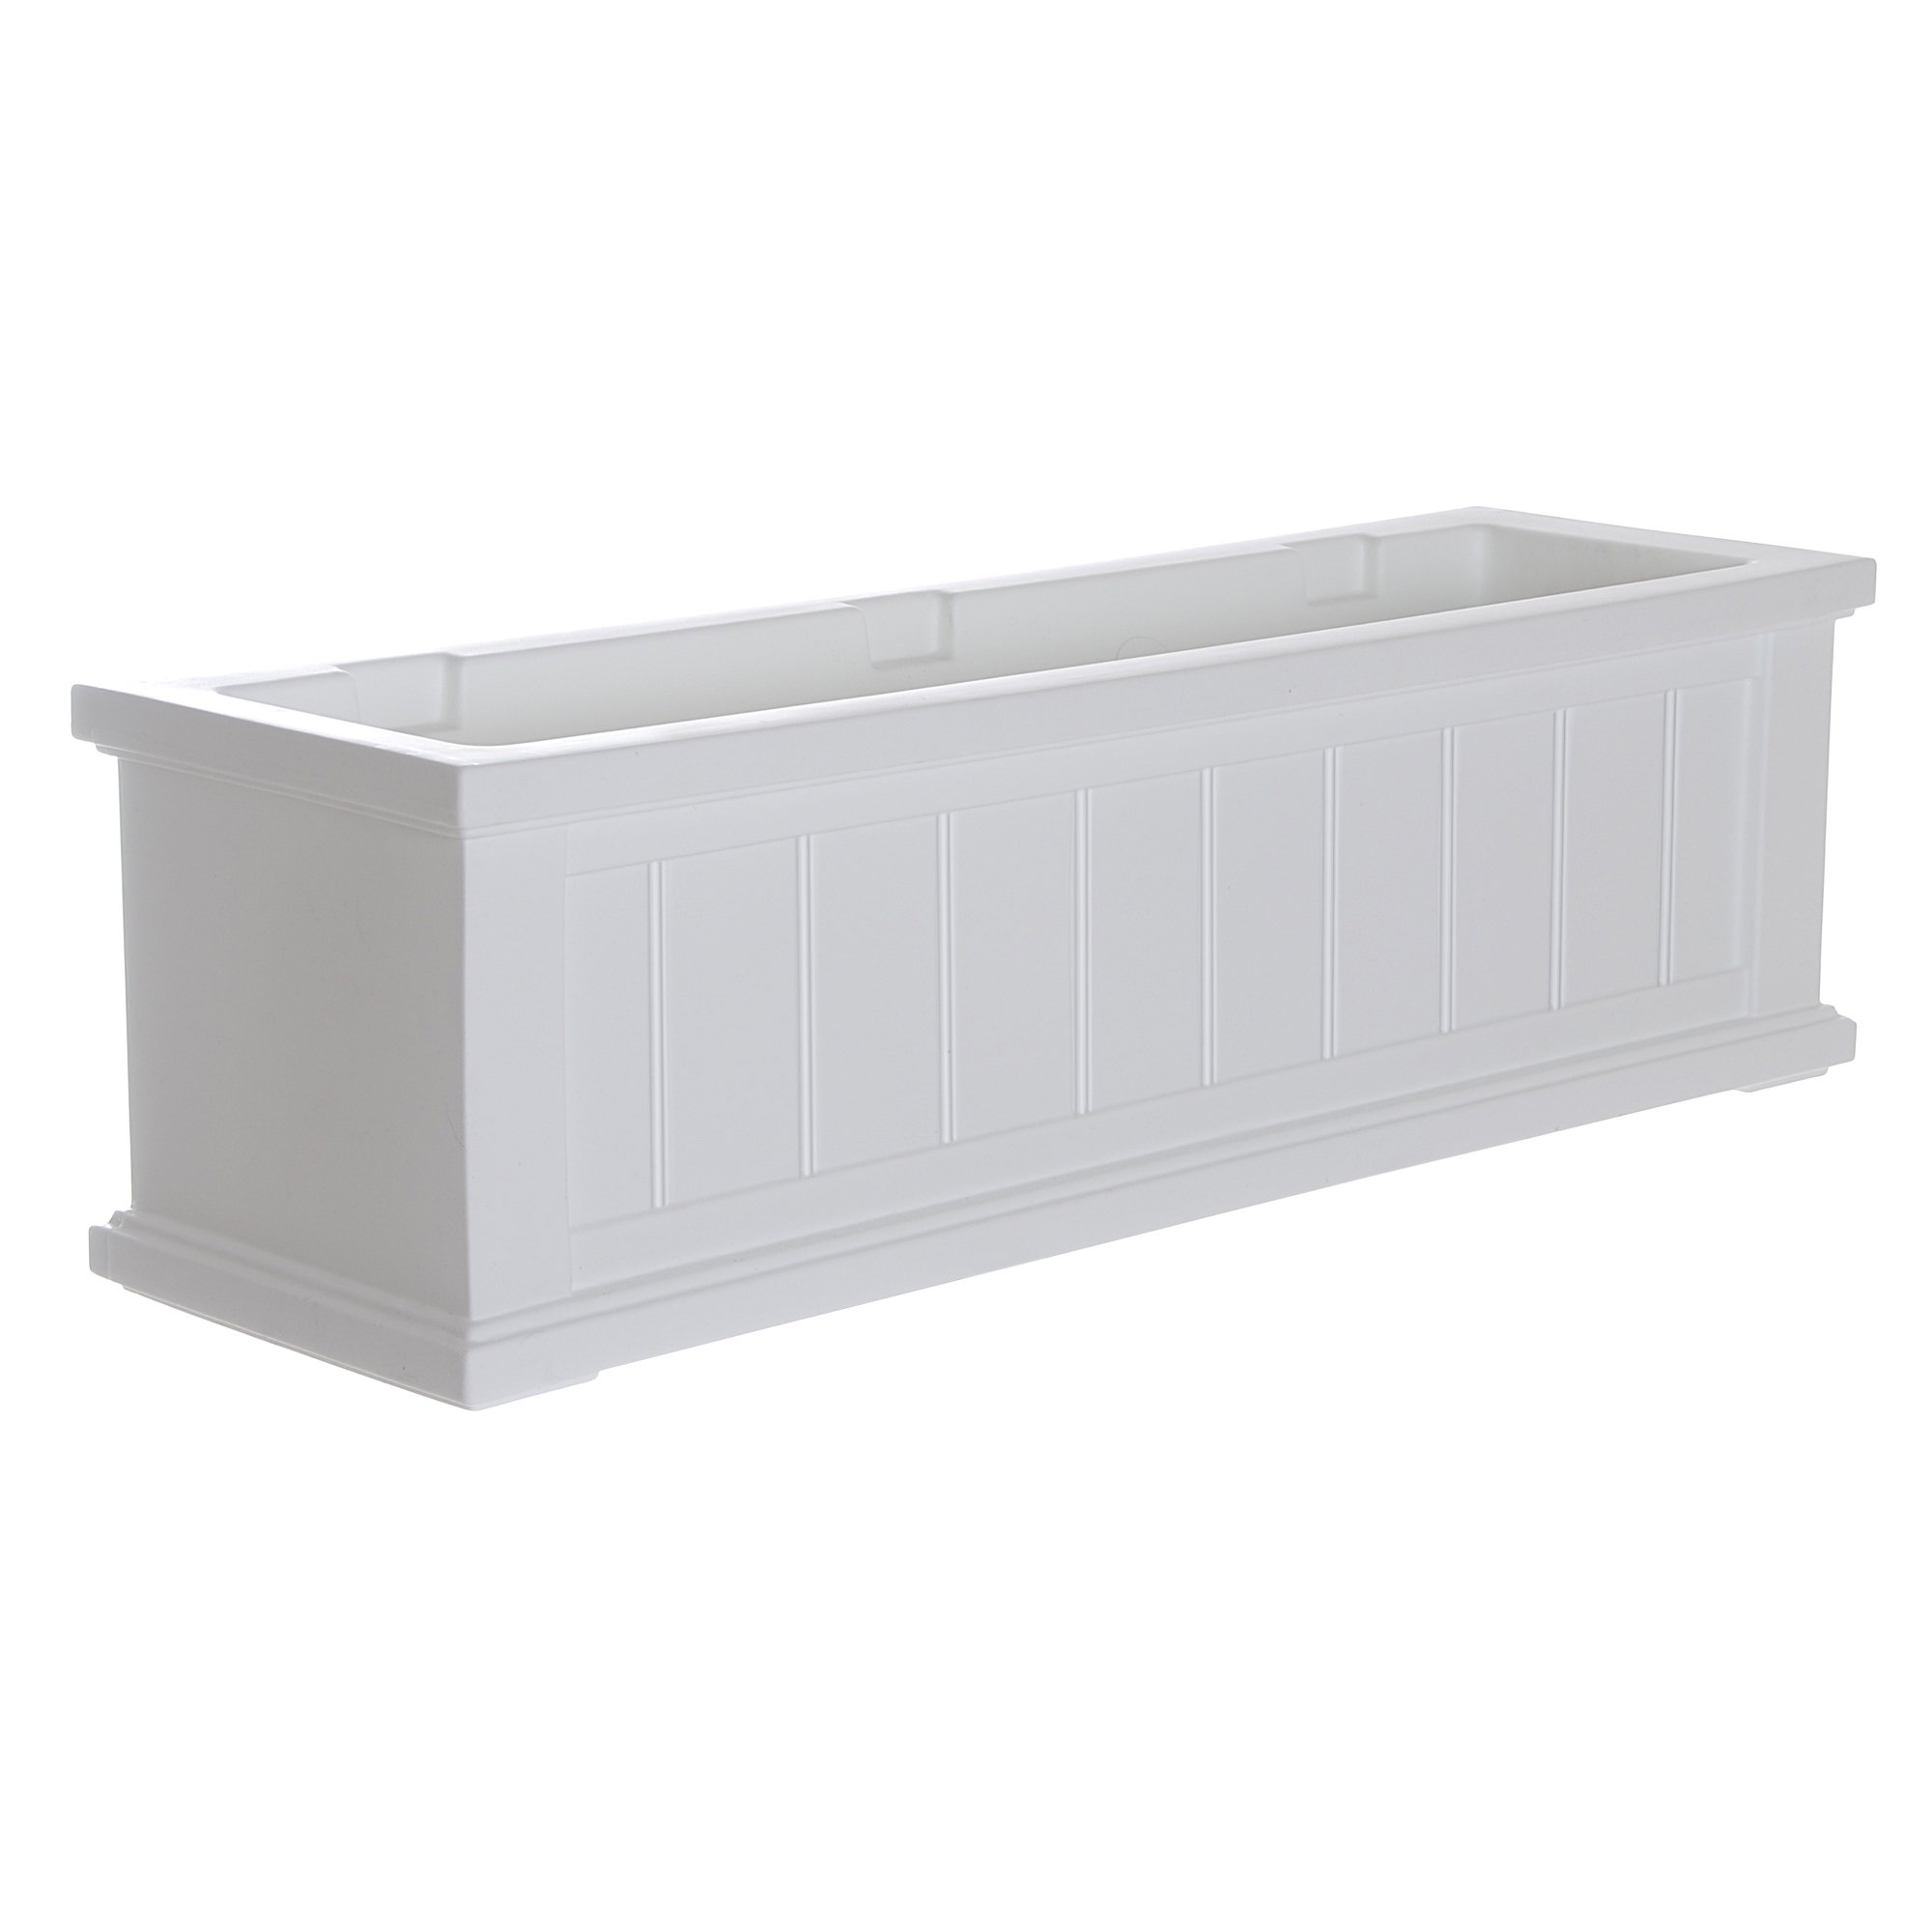 Mayne 4840-W Cape Cod Polyethylene Window Box, 3' , White